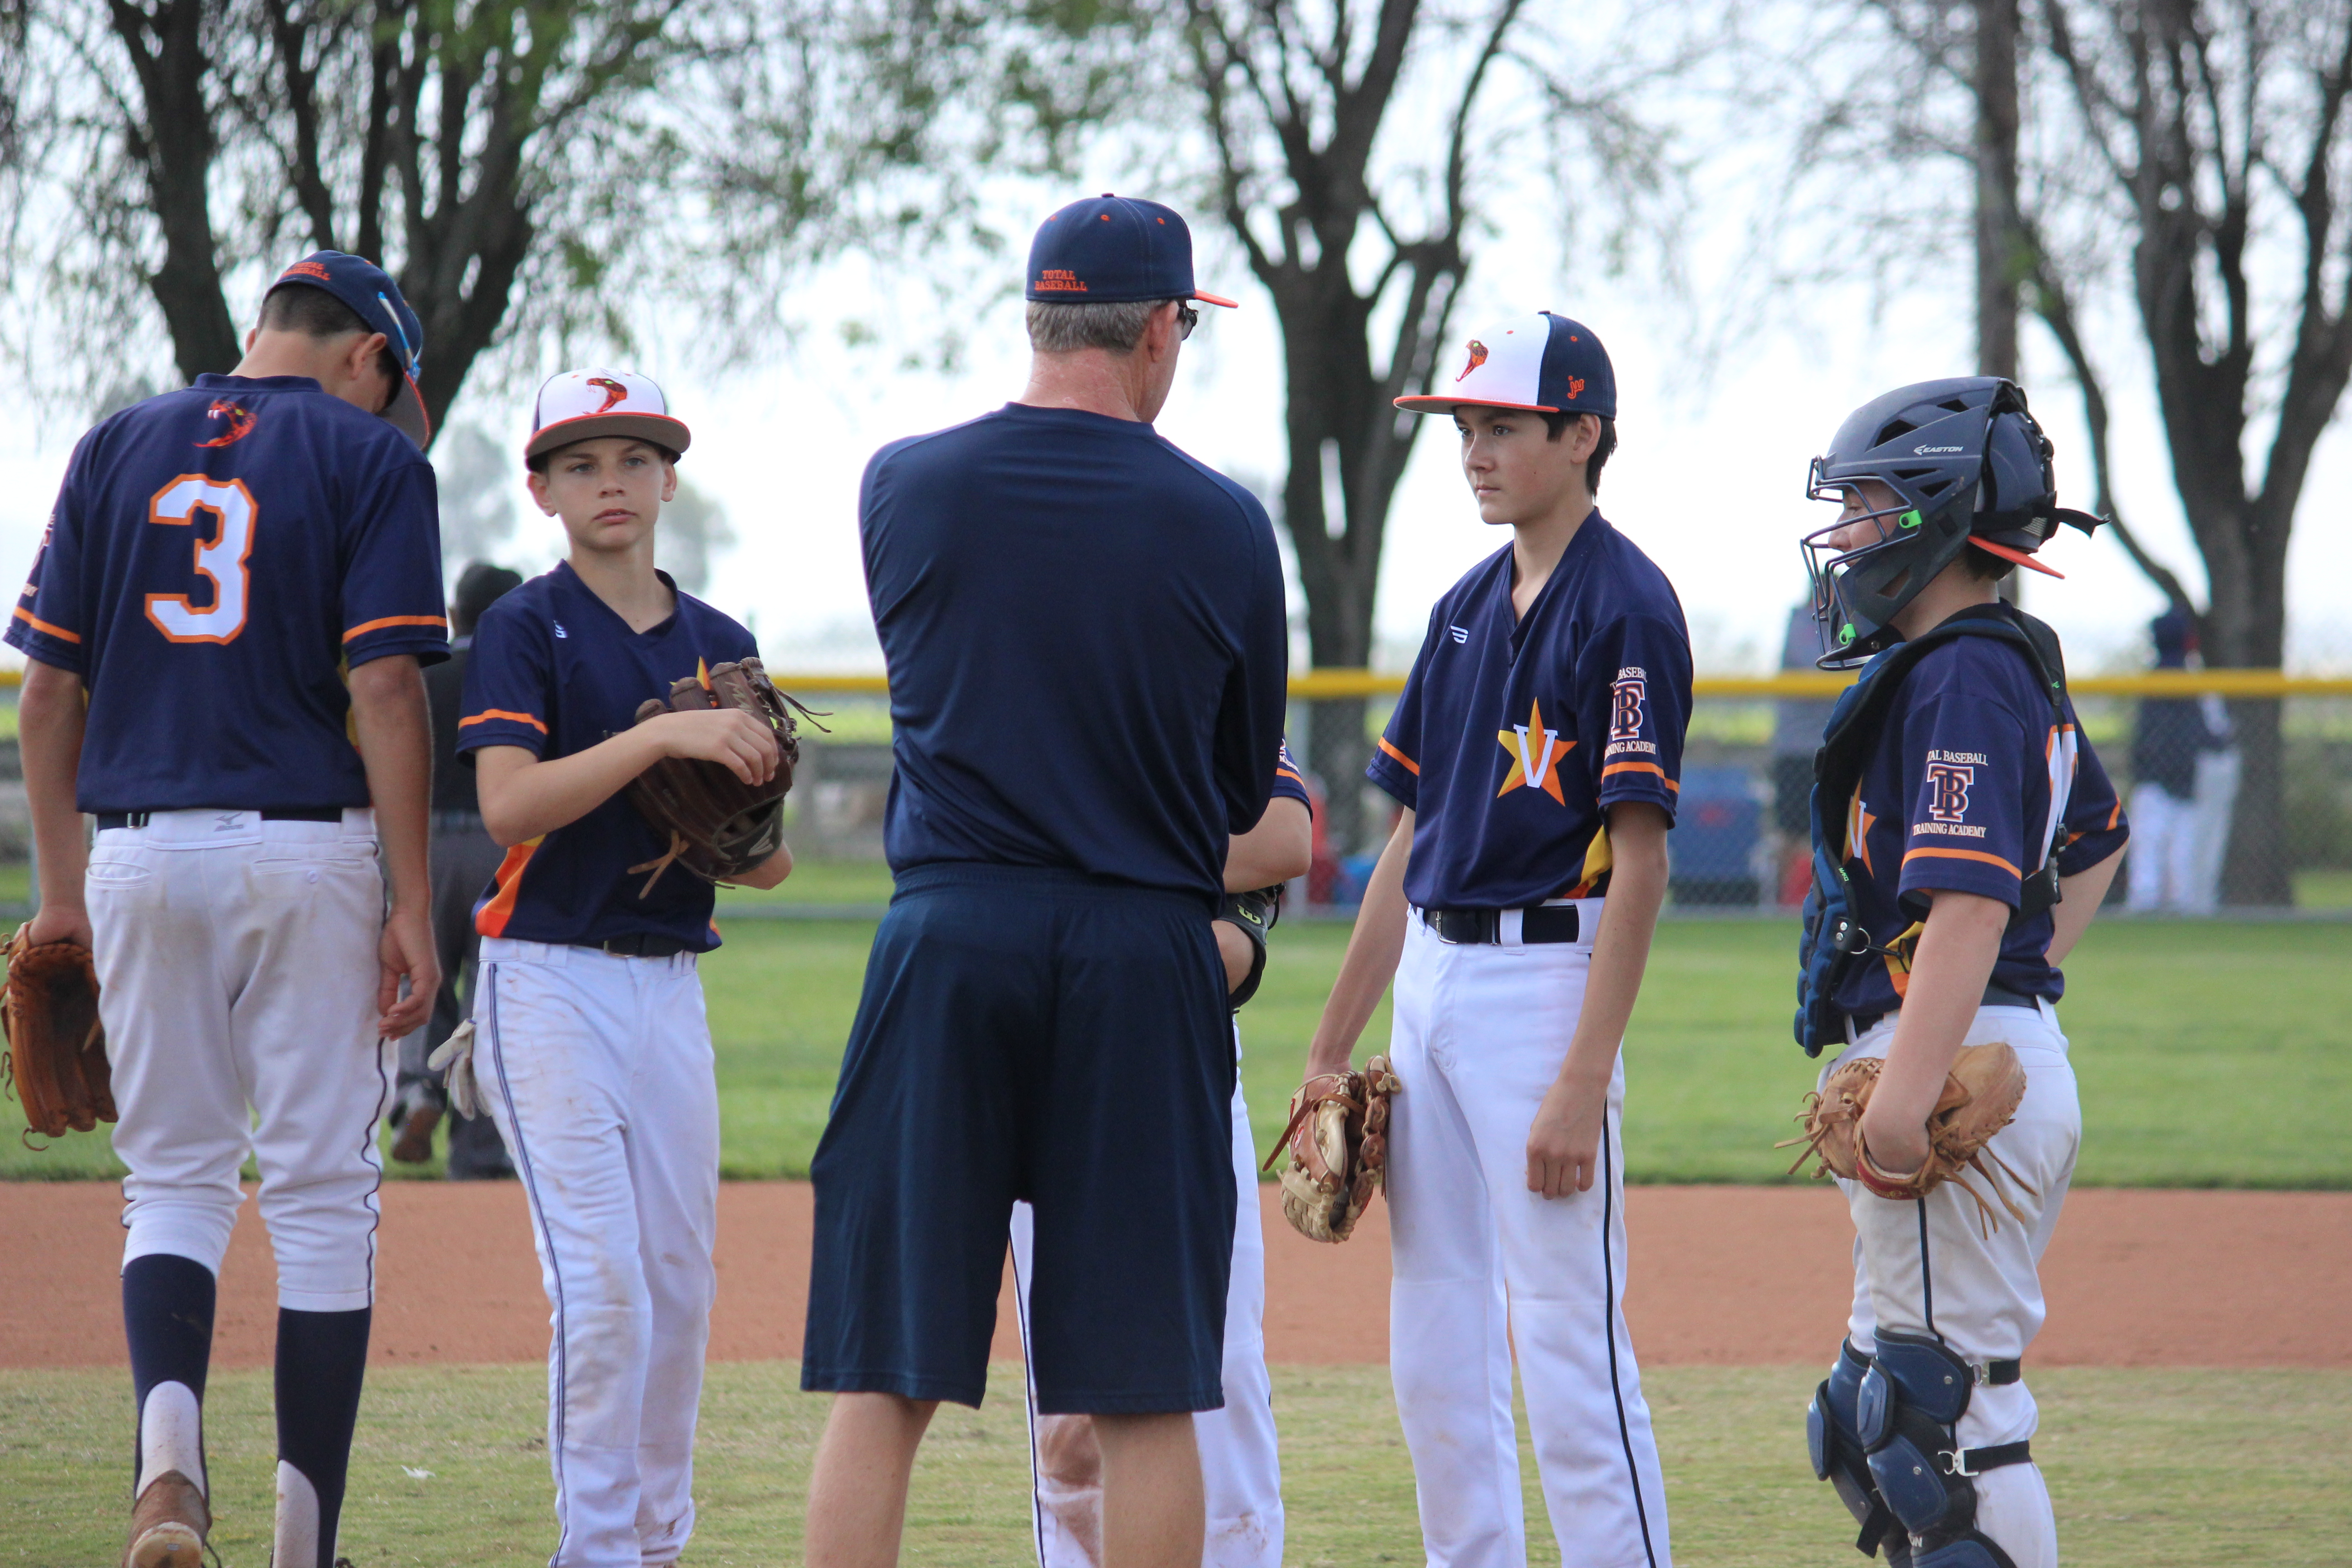 coach and players meeting at the mound